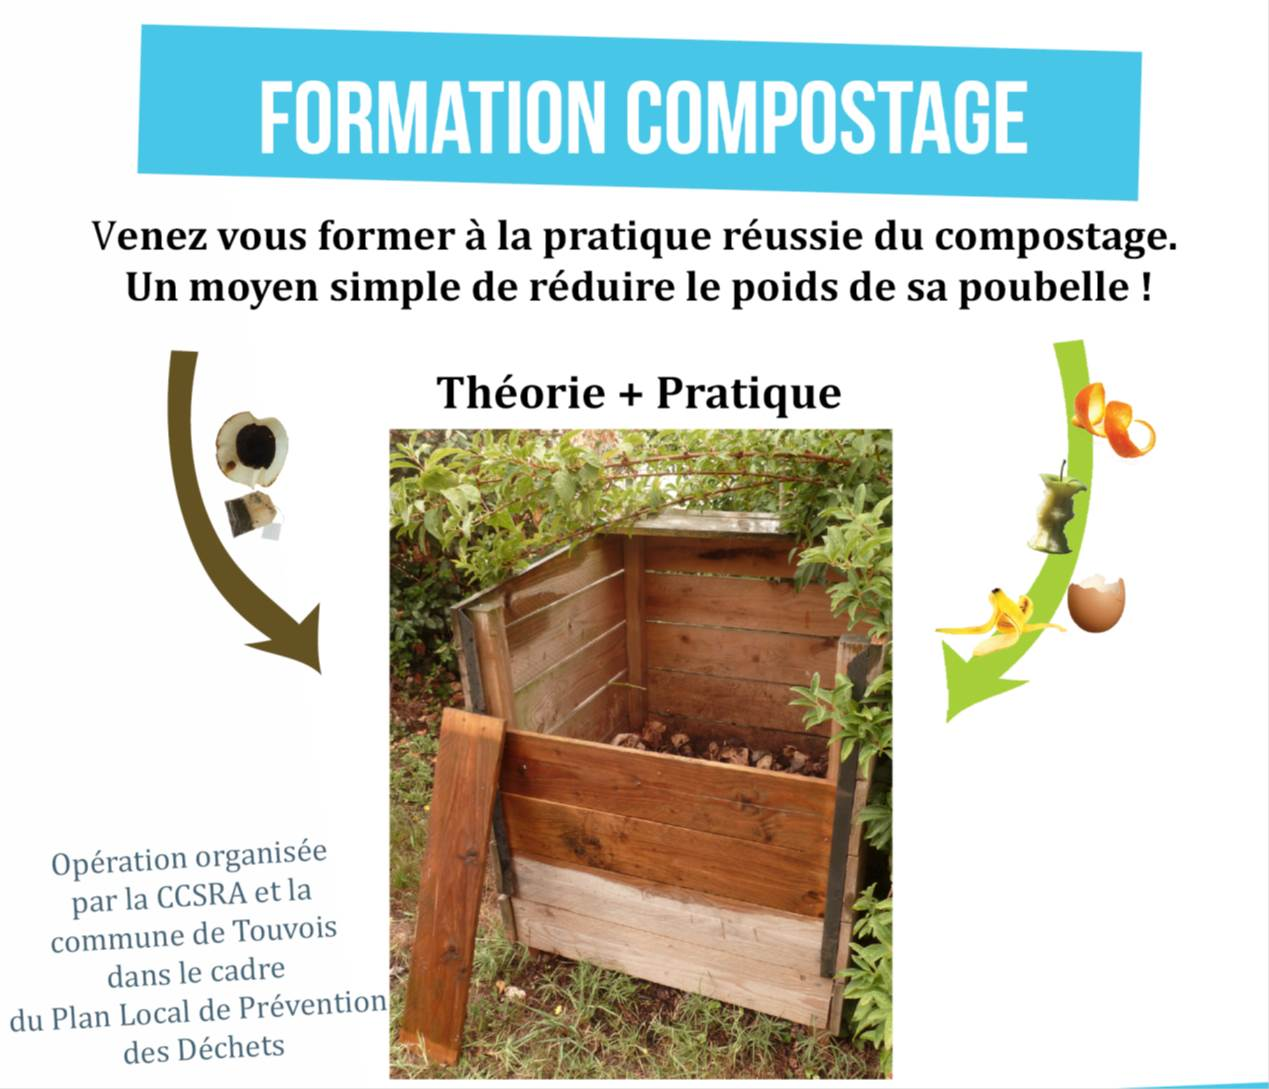 formation compostage sud retz atlantique touvois 28 septembre 2019